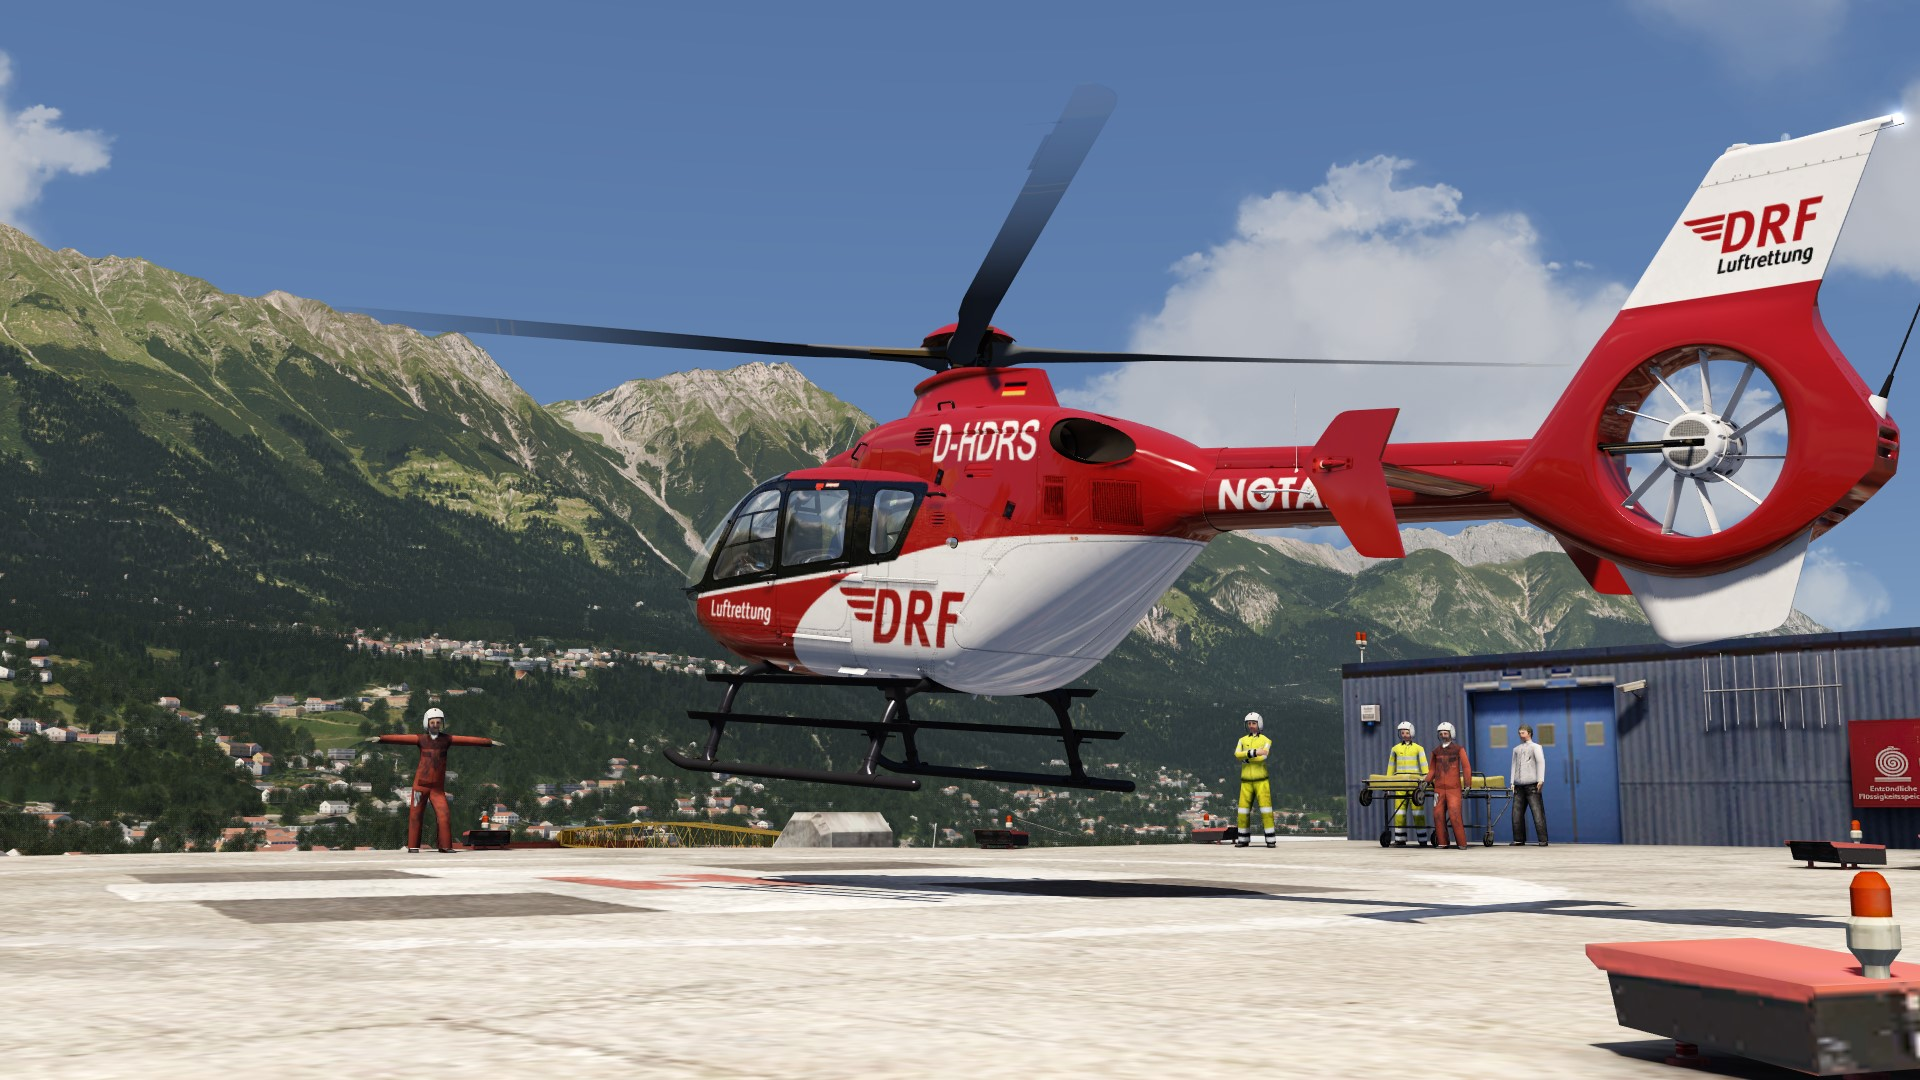 25911-aerofly-fs-2-screenshot-ec135-inns